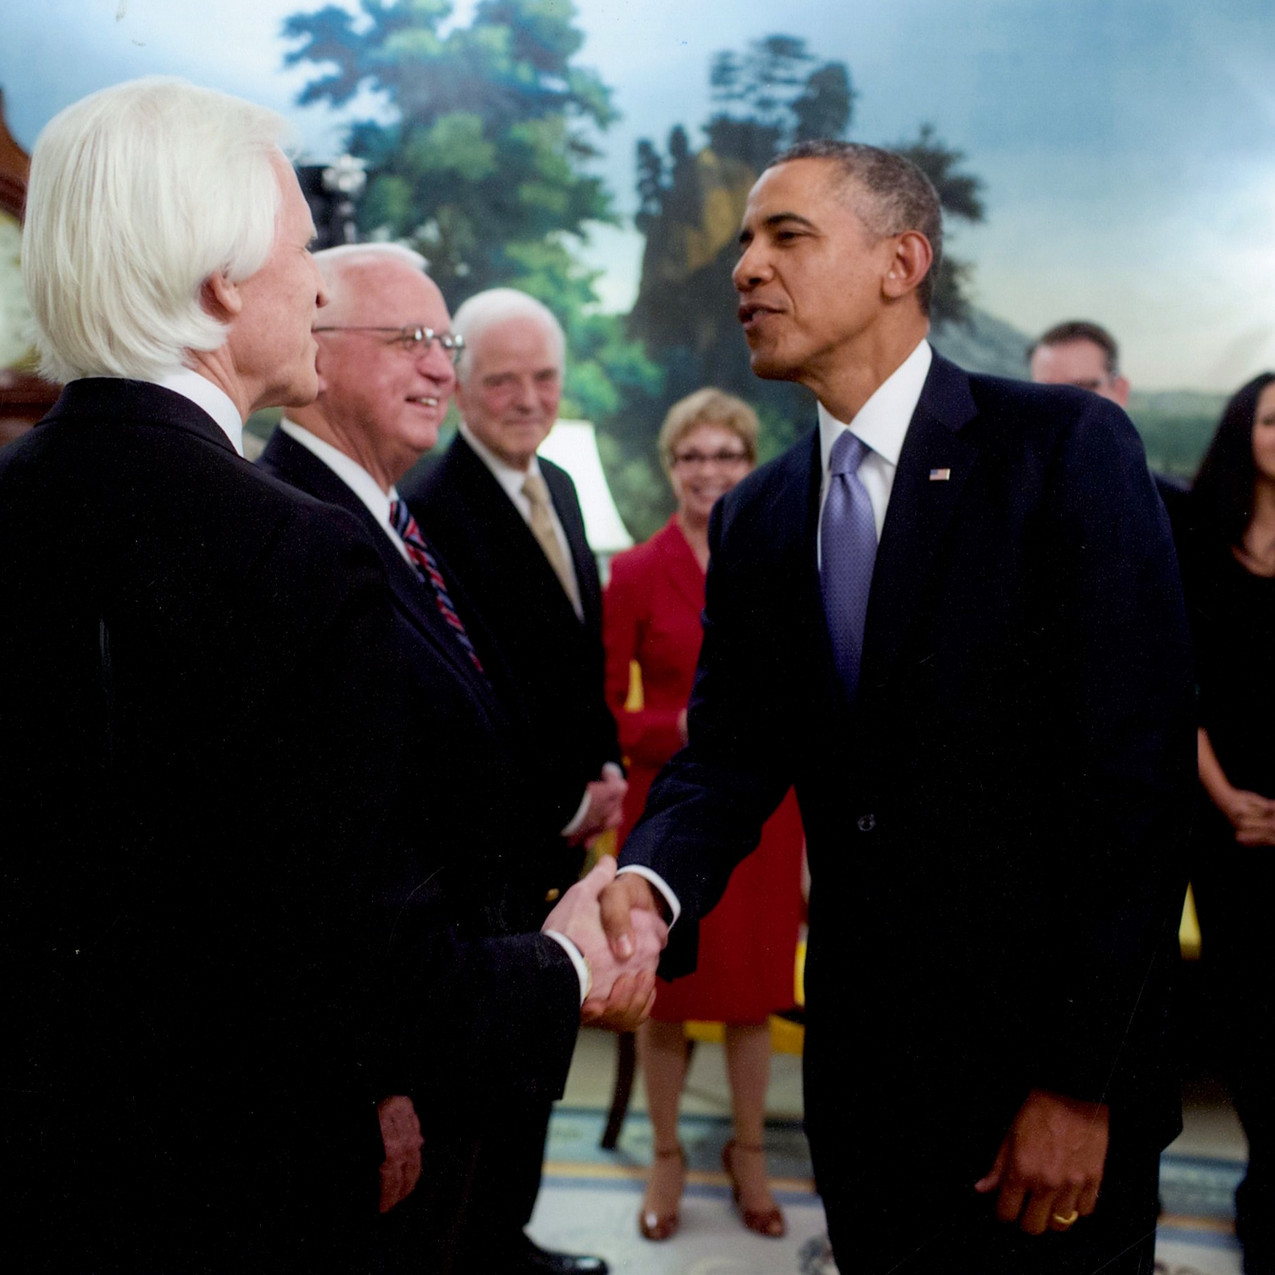 With President Obama